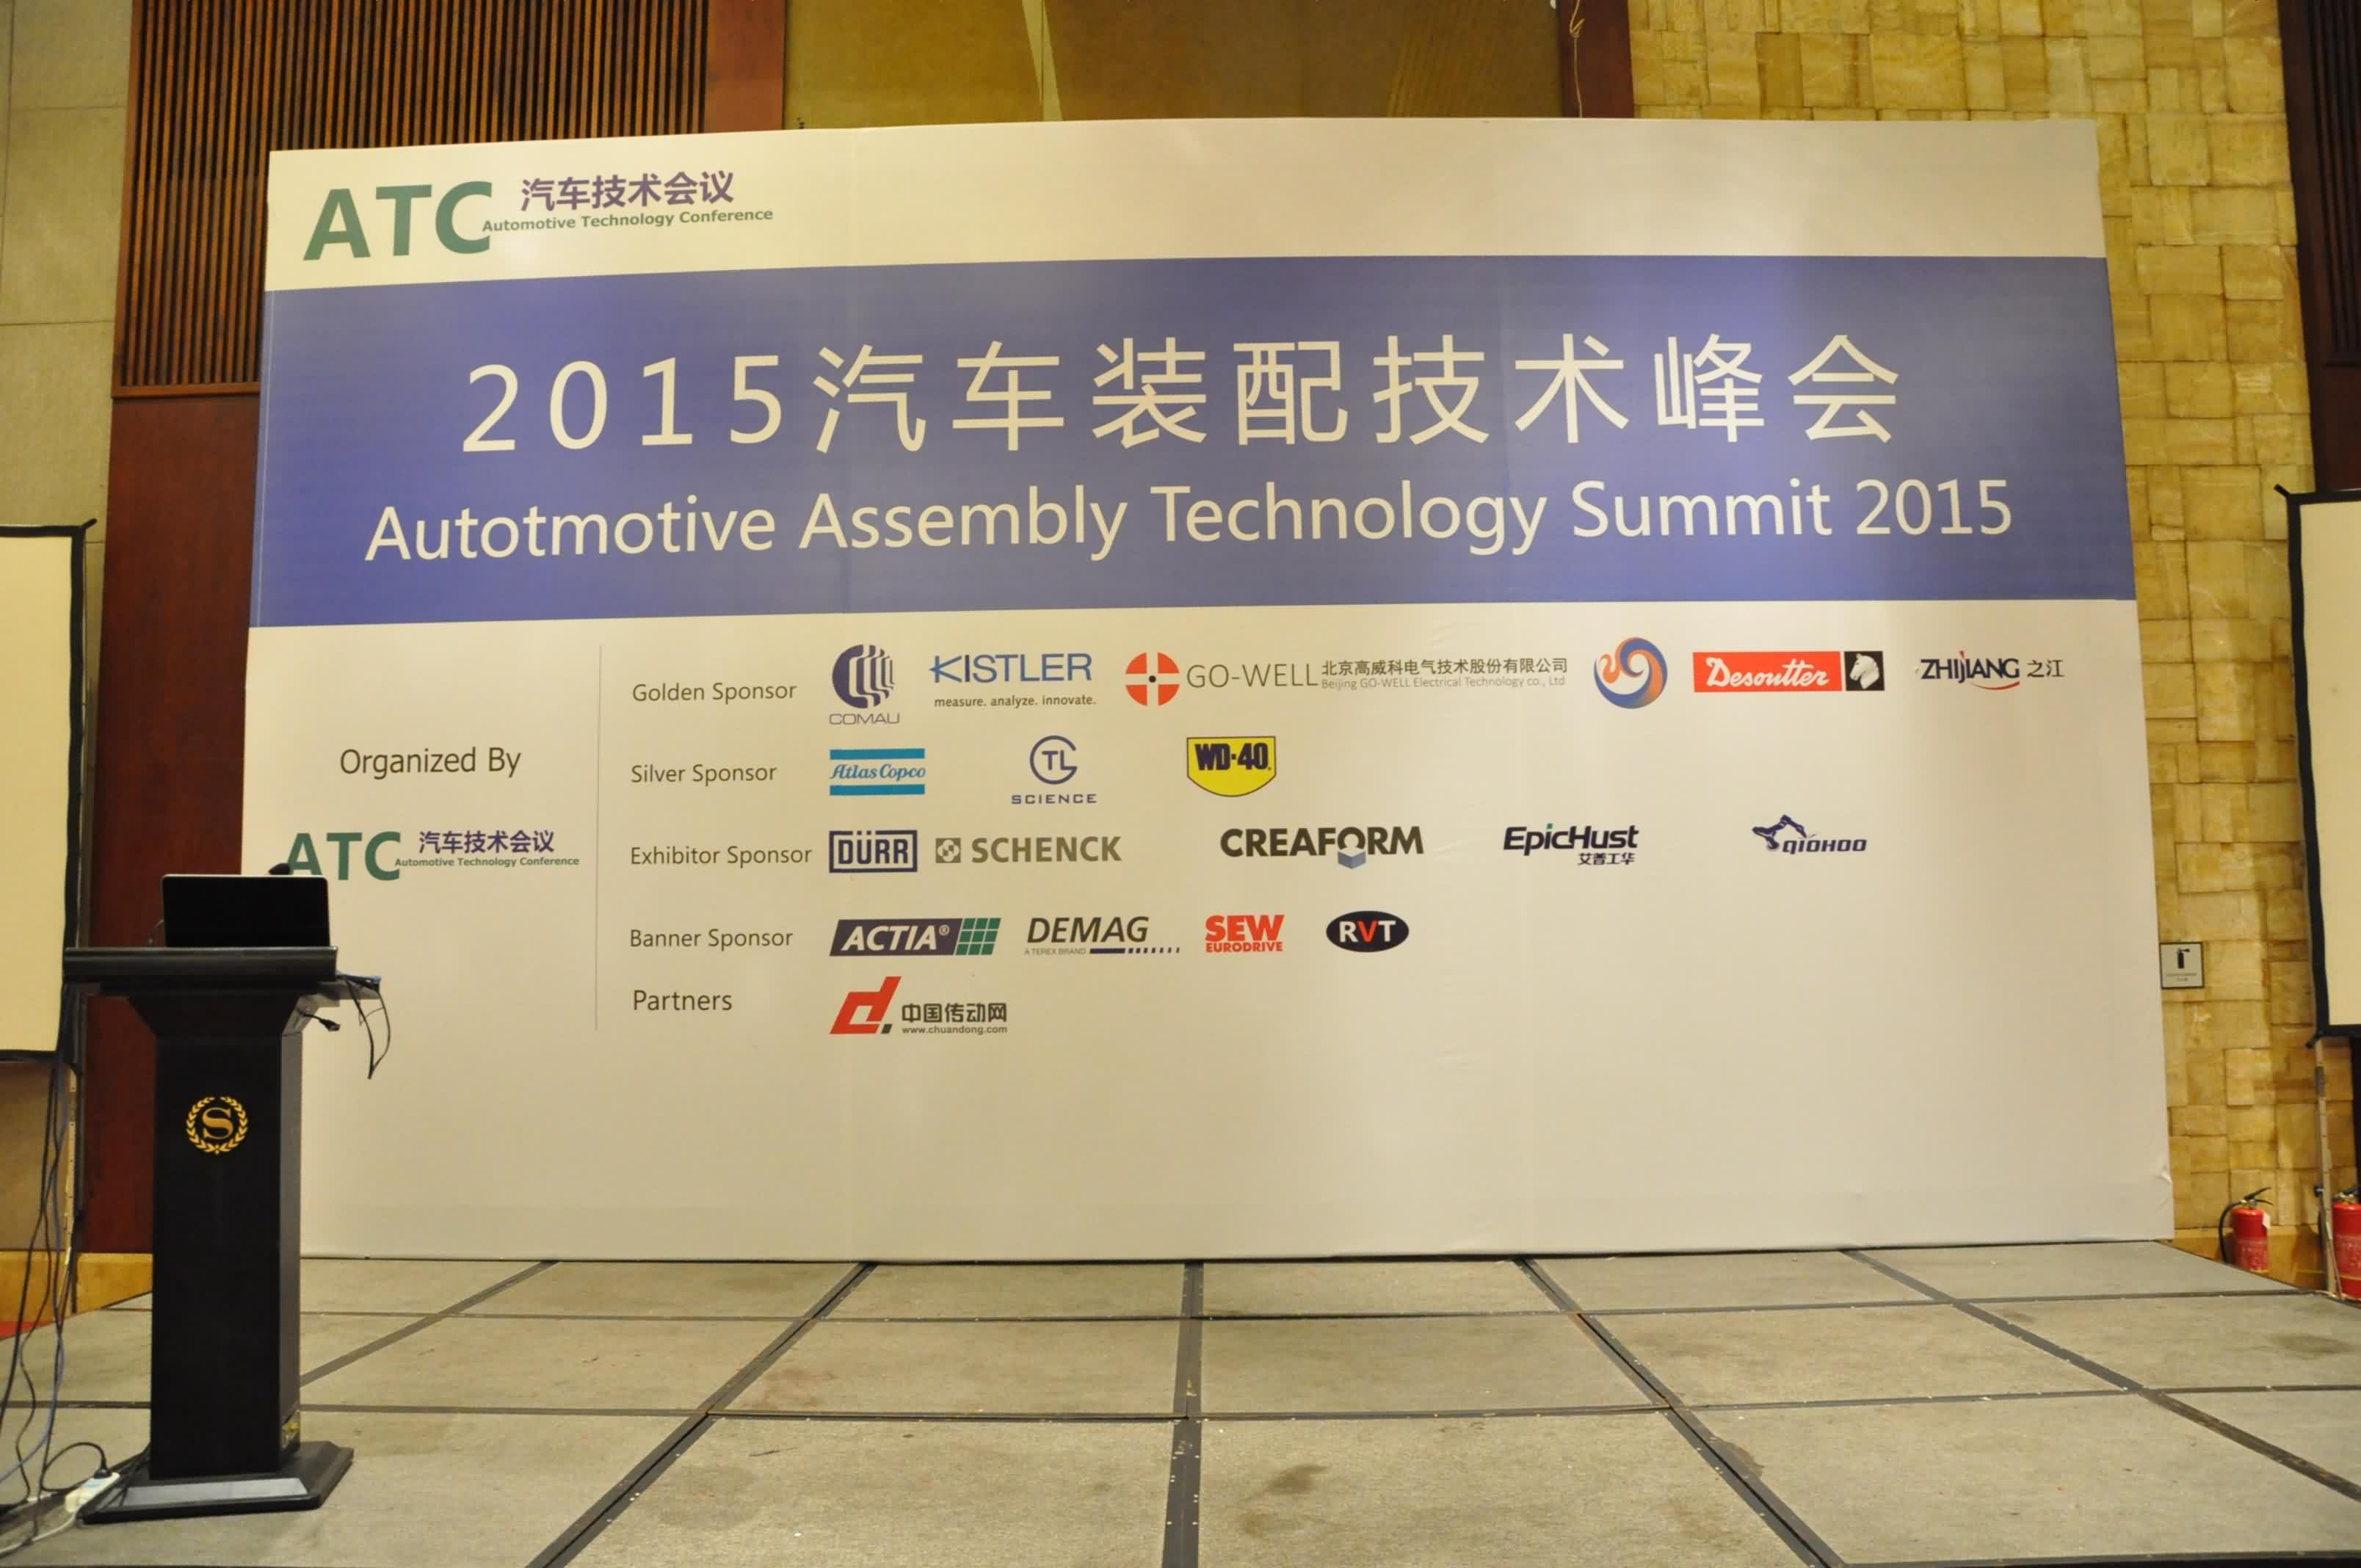 Shanghai Siway Building Material Co., Ltd to participate in the 2015 car assembly technology summit